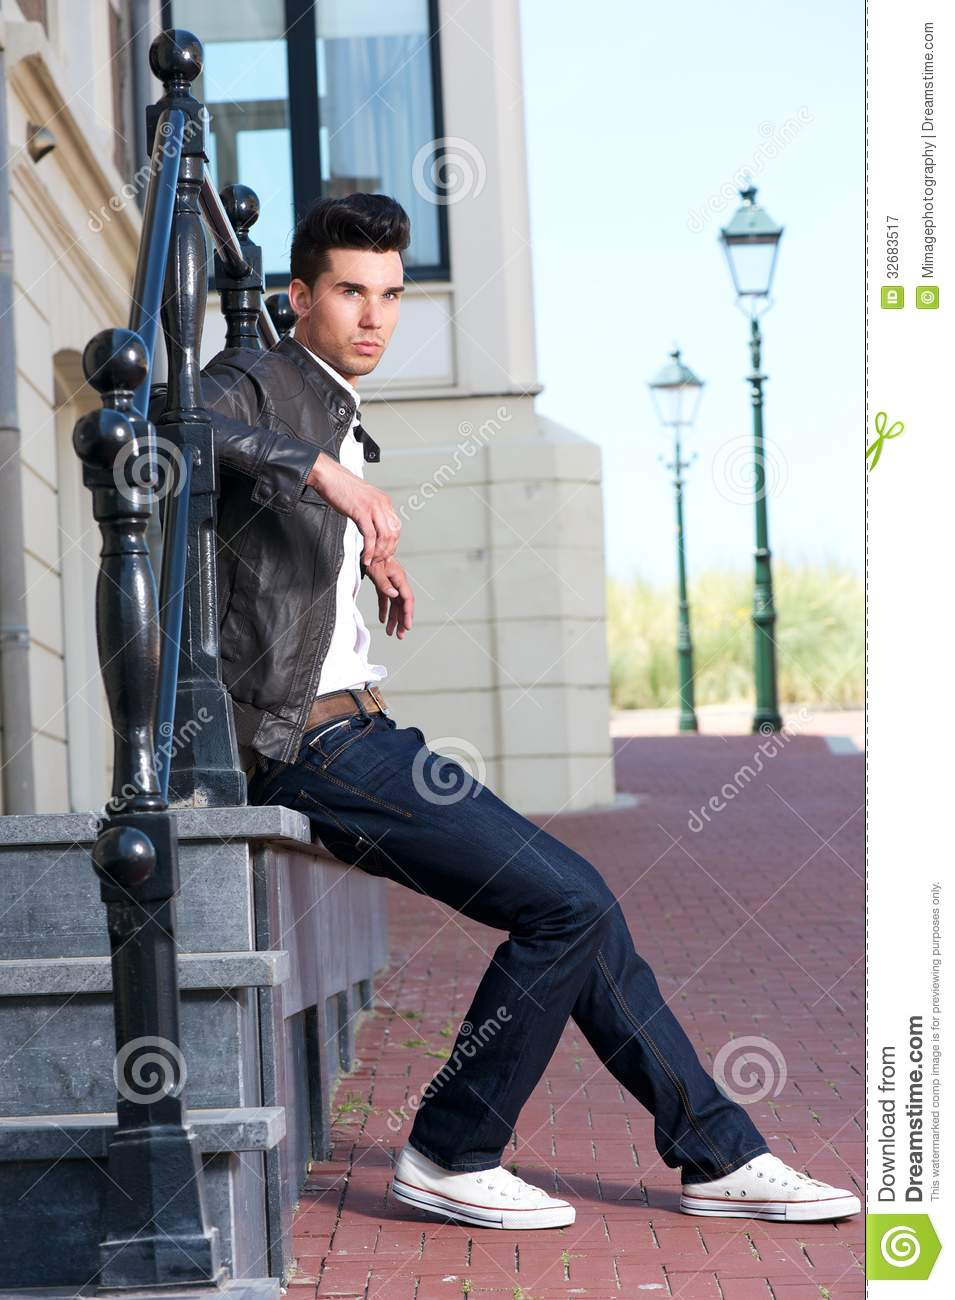 Male Fashion Model In Leather Jacket Sitting Outdoors Stock Photo